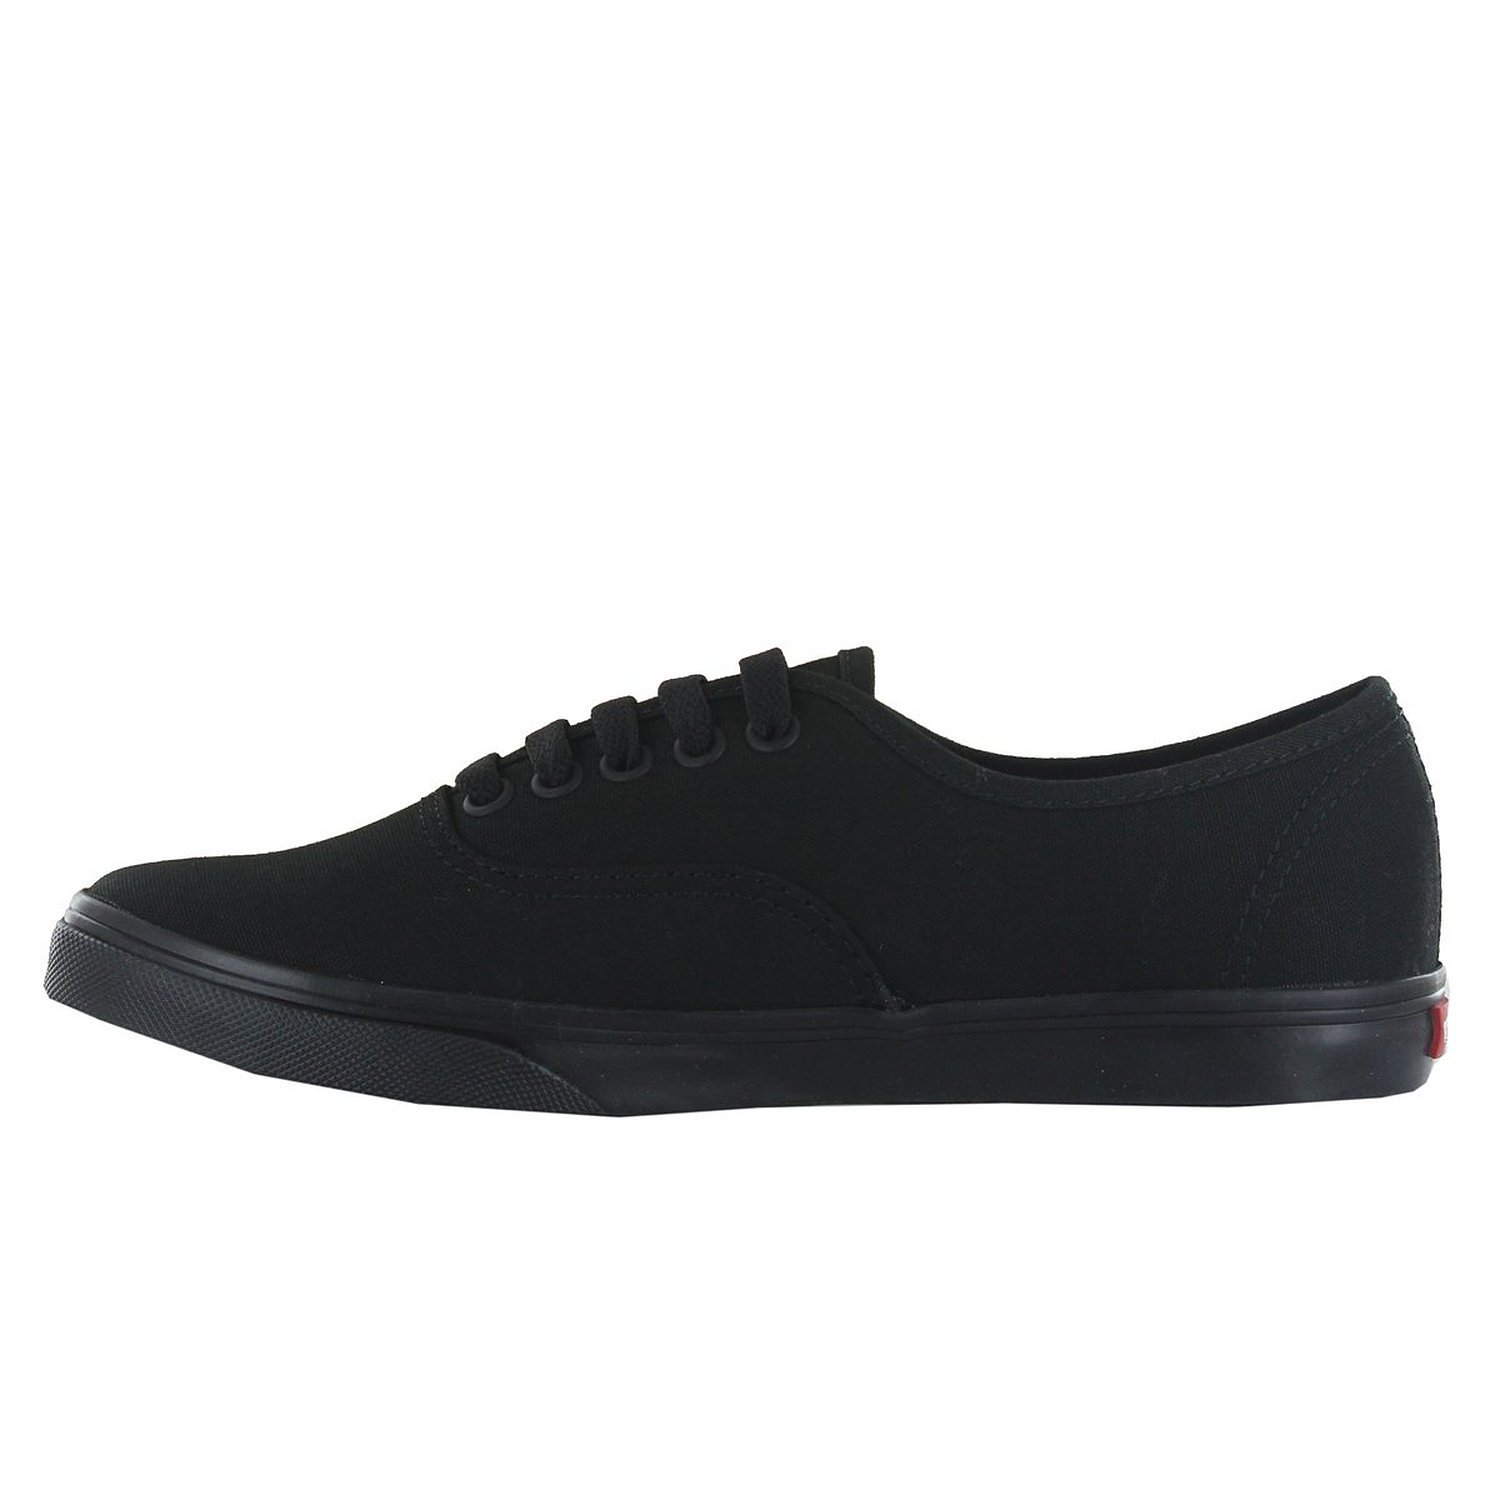 Vans Herren Authentic Core Classic Sneakers Women B01JZ6THOY 11.5 M US Women Sneakers / 10 M US Men|Black/Black ca65bd